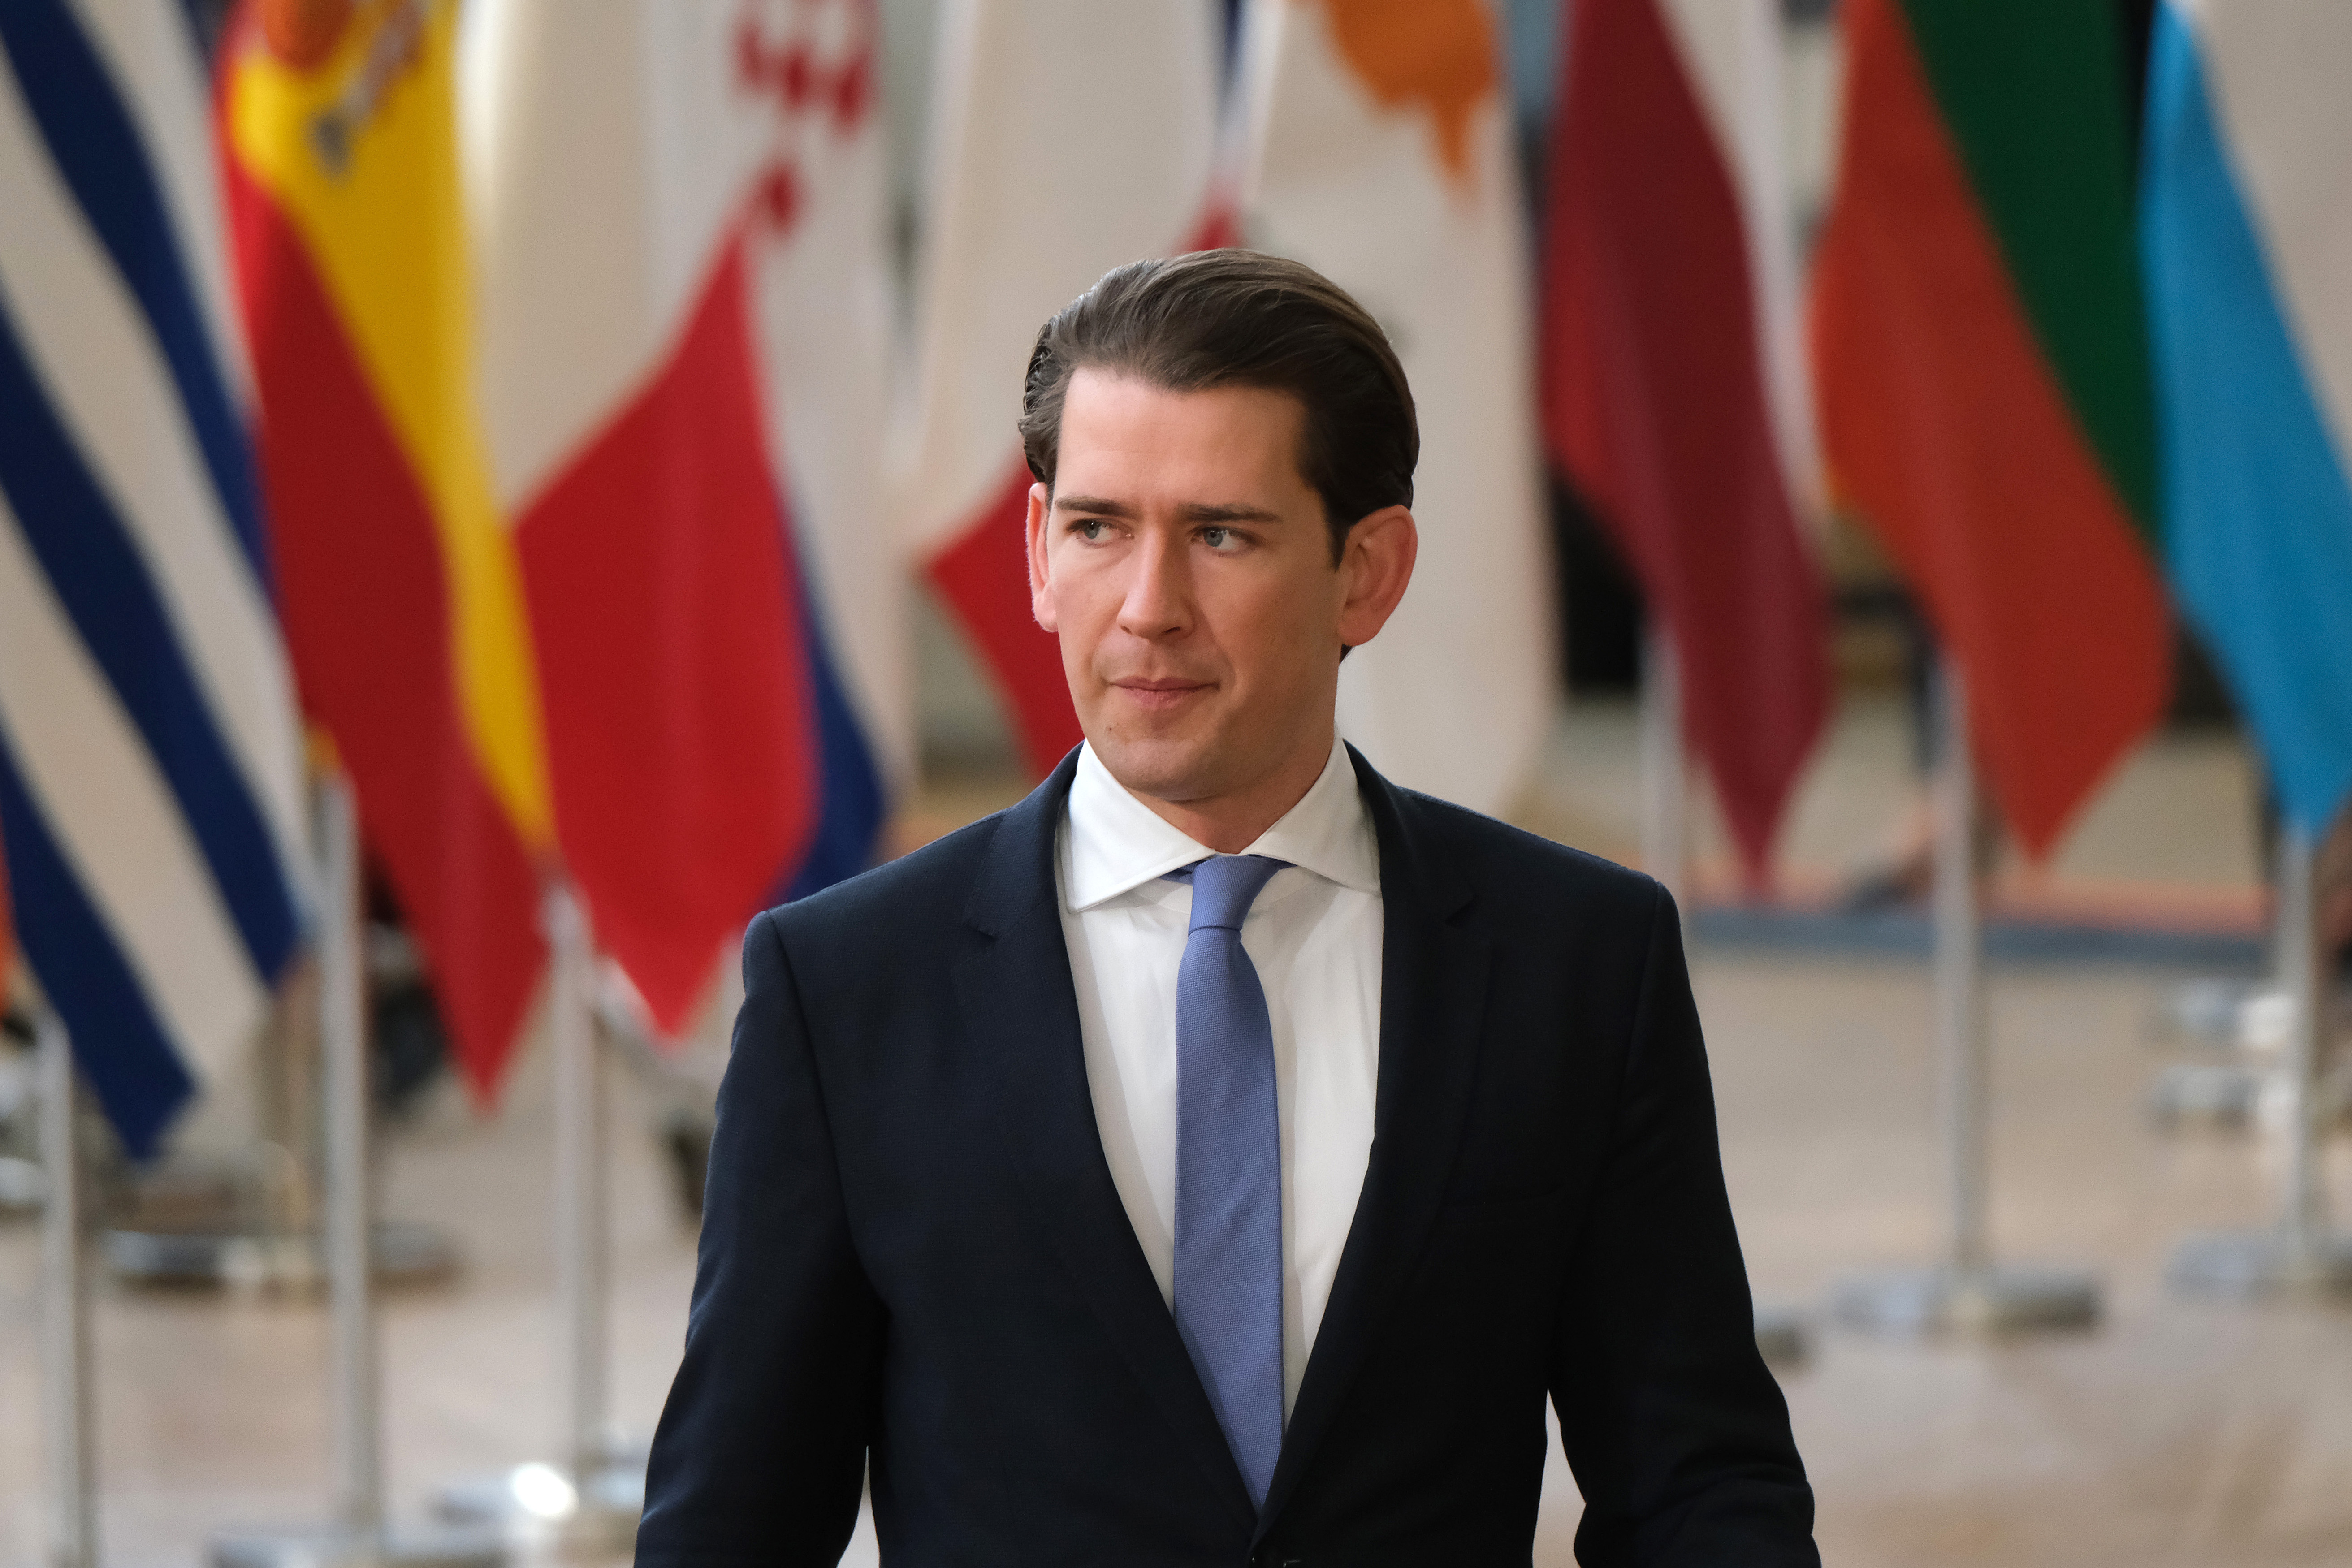 Austrian Chancellor Sebastian Kurz attends a celebration to mark the 25th anniversary of the European Economic Area on the second day of an EU summit on March 22, 2019 in Brussels, Belgium.